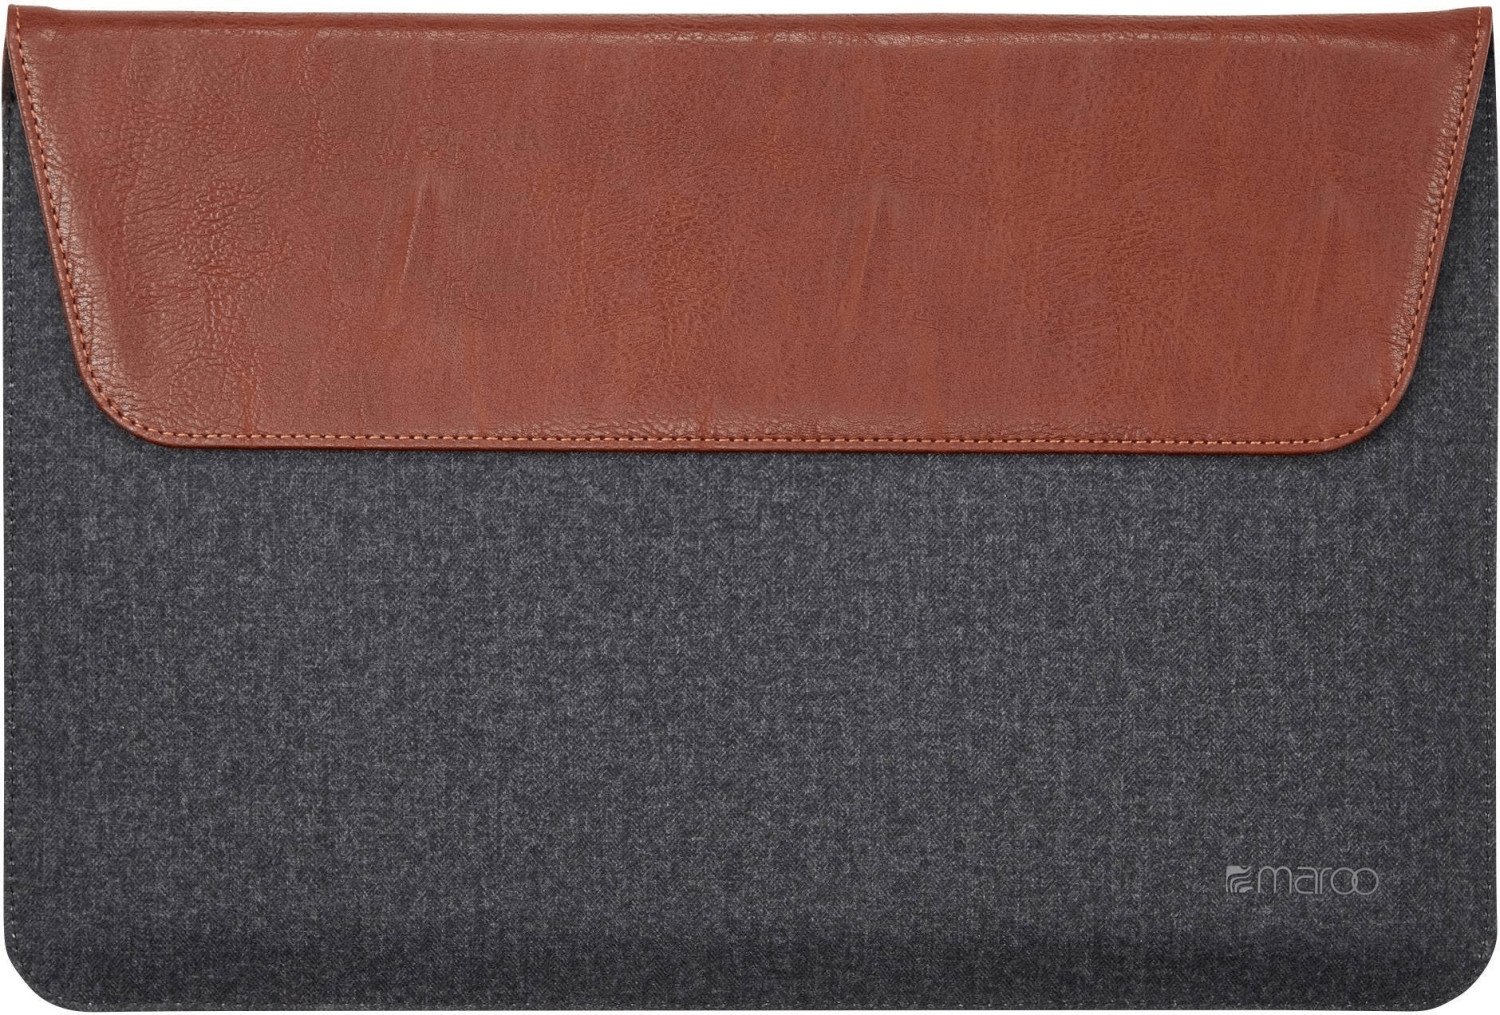 Maroo Leather Sleeve Microsoft Surface Pro 3 brown (MR-MS3307)